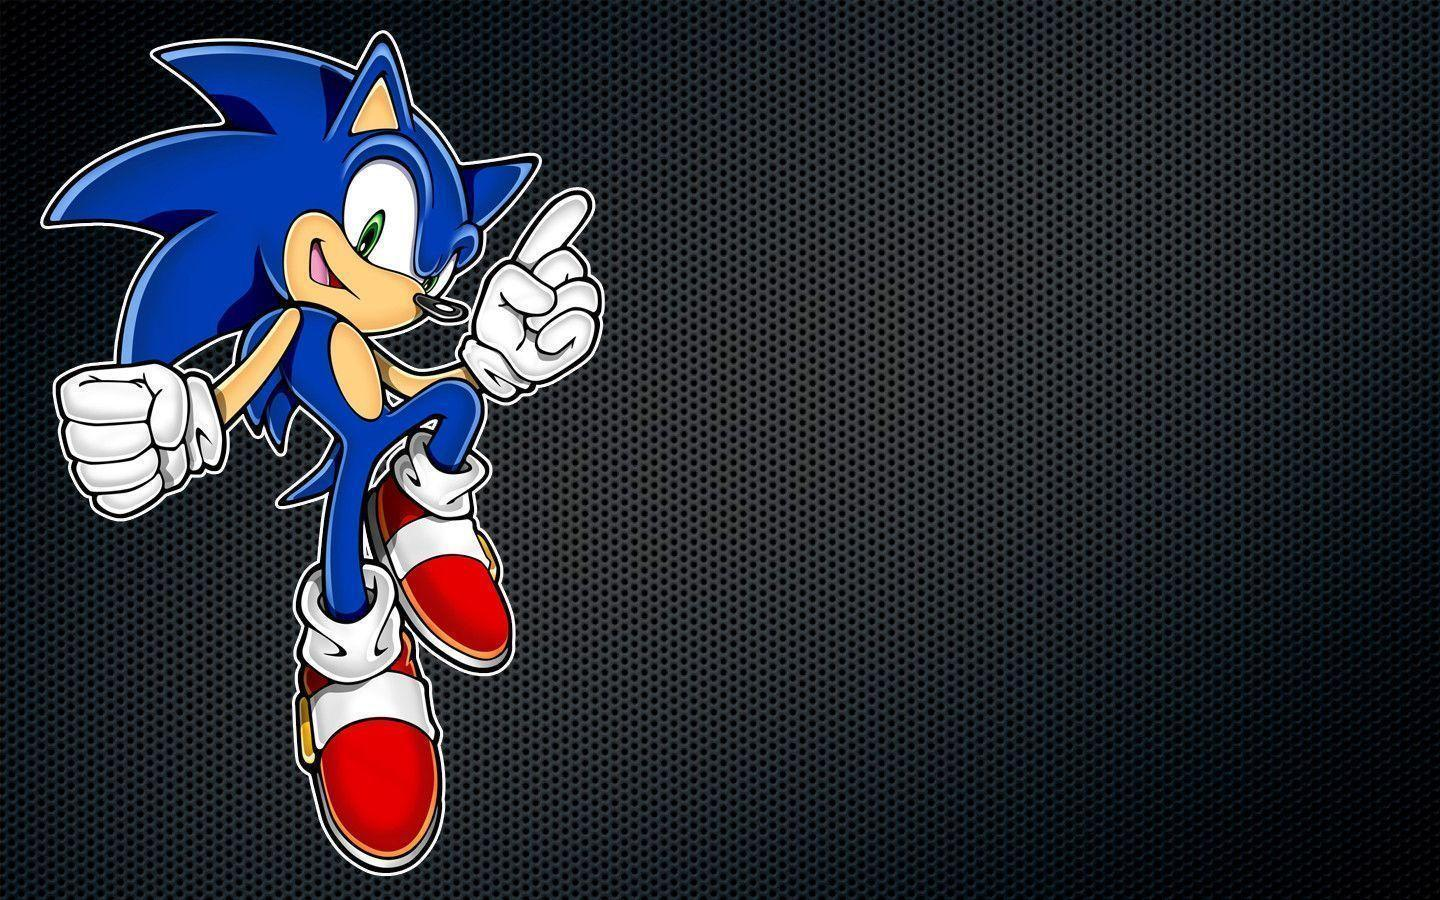 Sonic Wallpapers Wallpaper Cave HD Wallpapers Download Free Images Wallpaper [1000image.com]